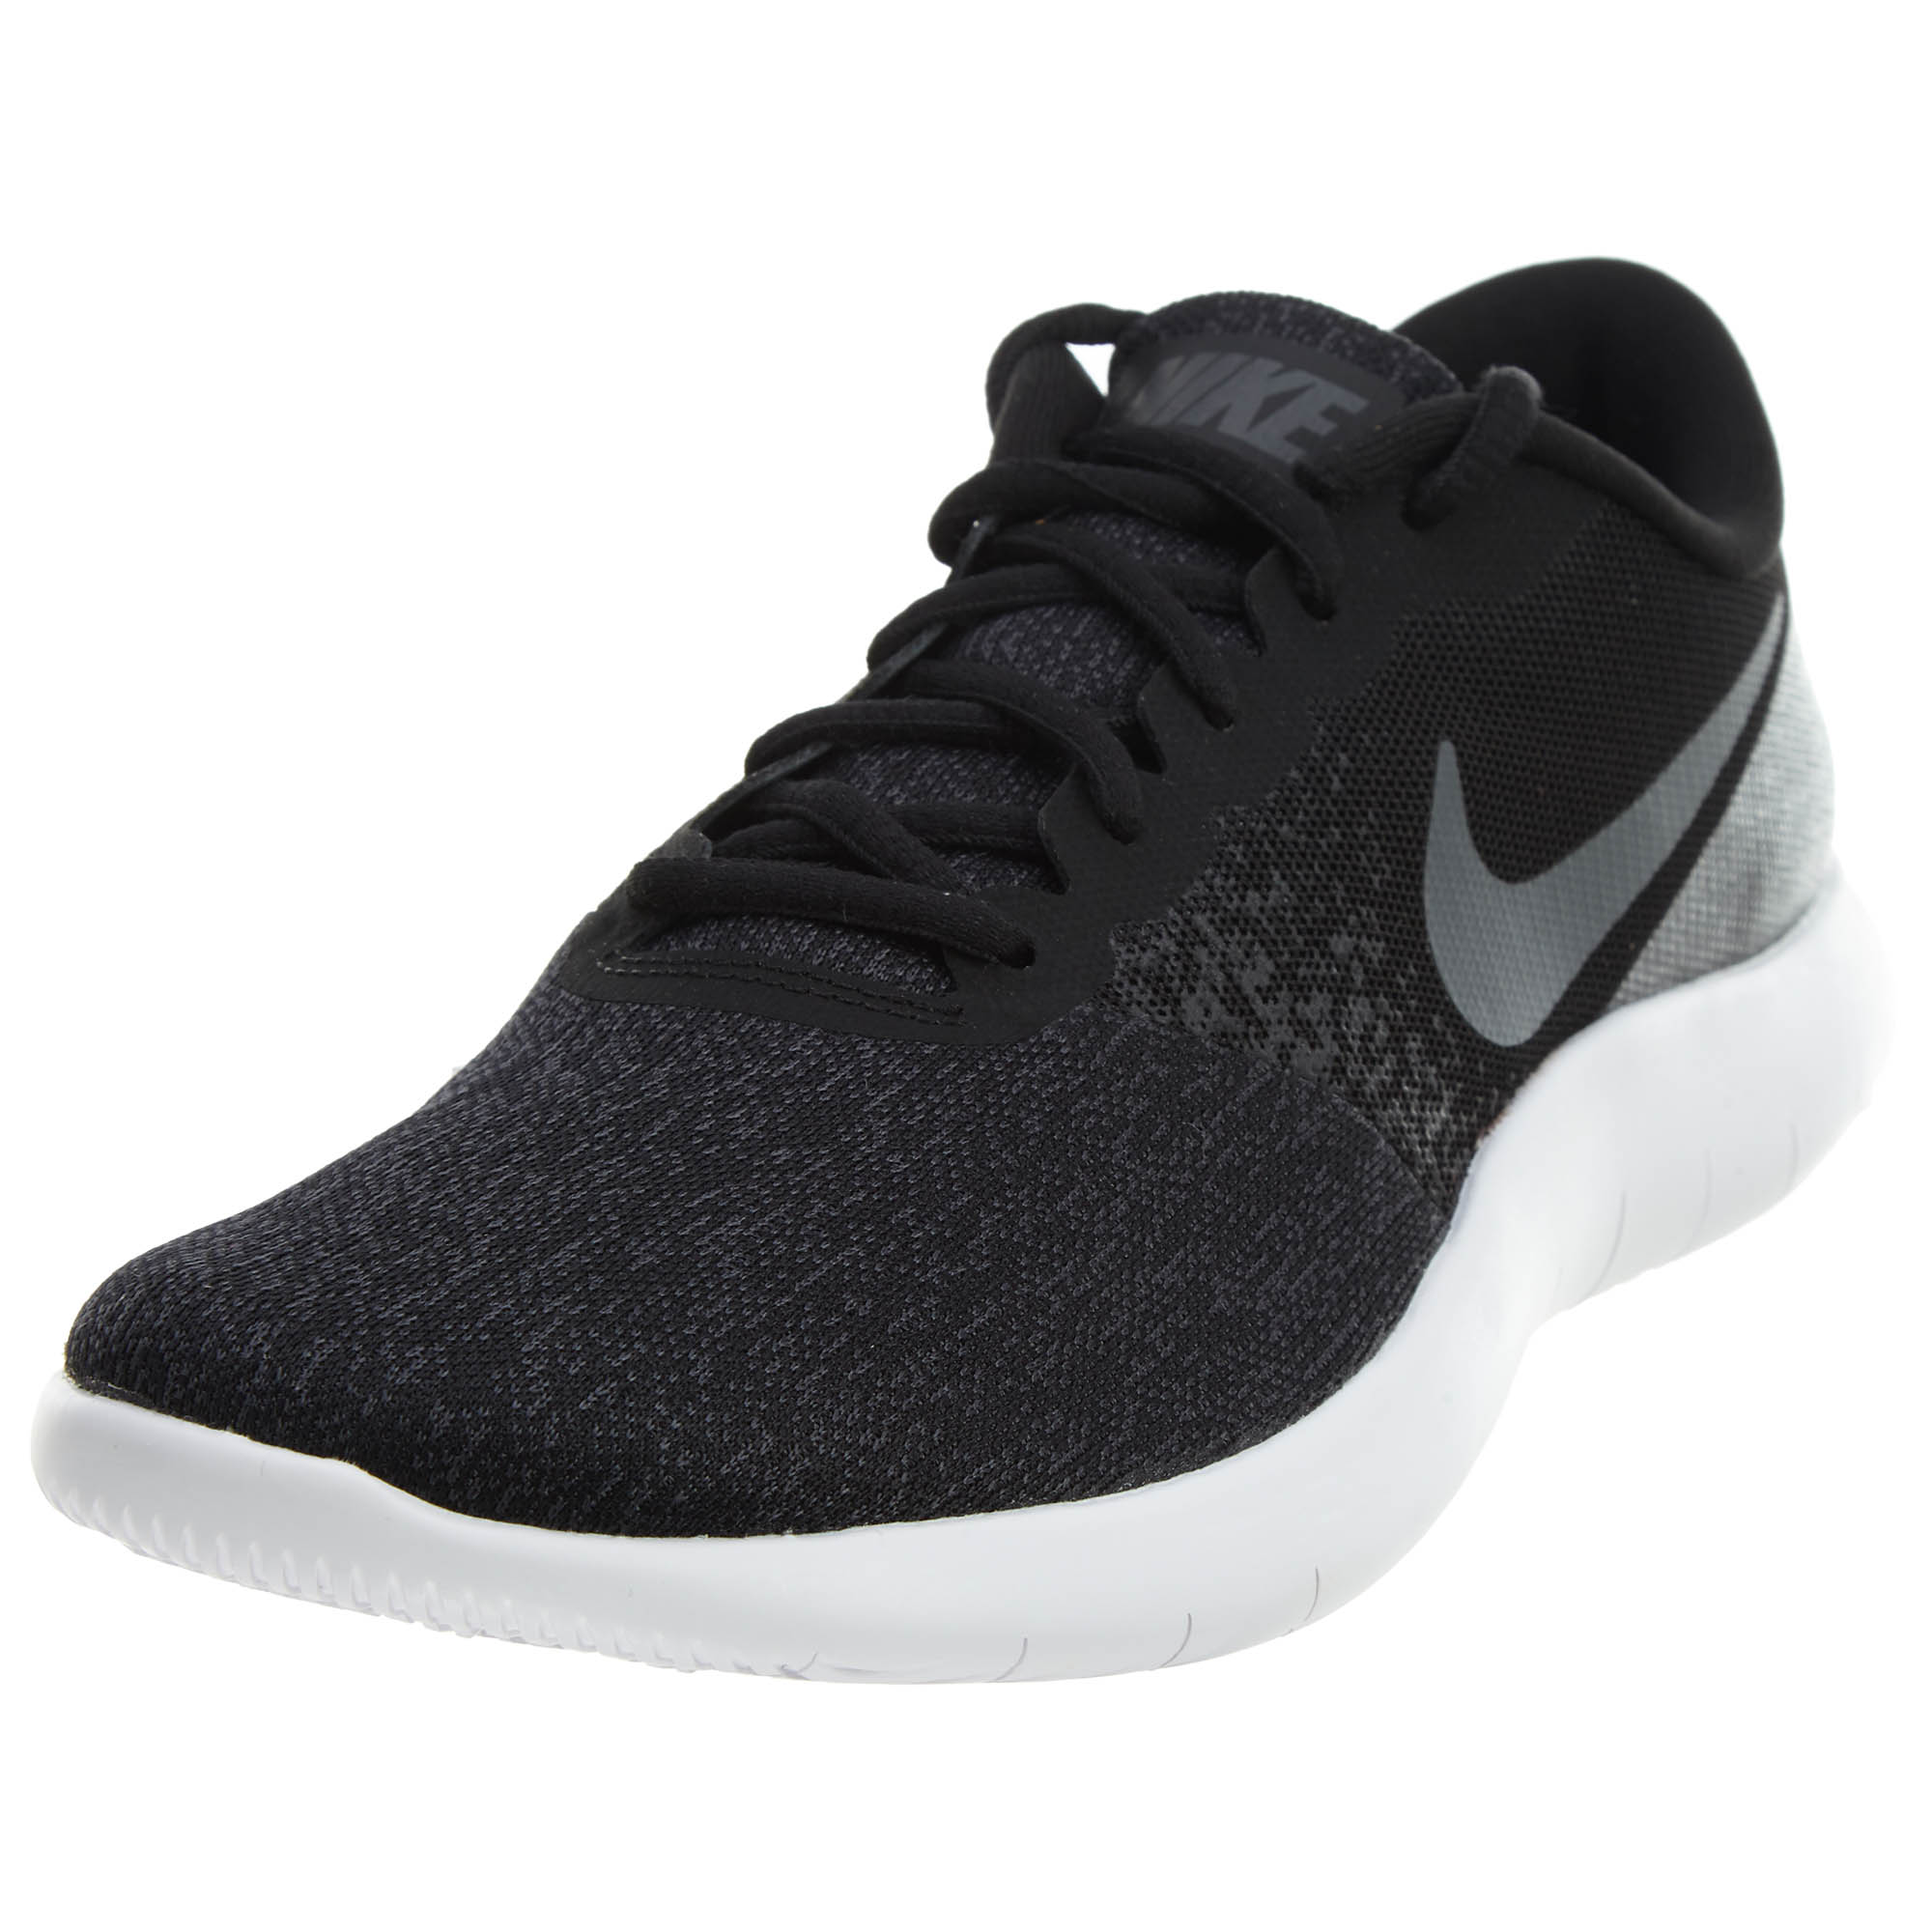 buy online 5e662 67762 Details about Nike Mens Flex Contact Running Shoes 908983-002